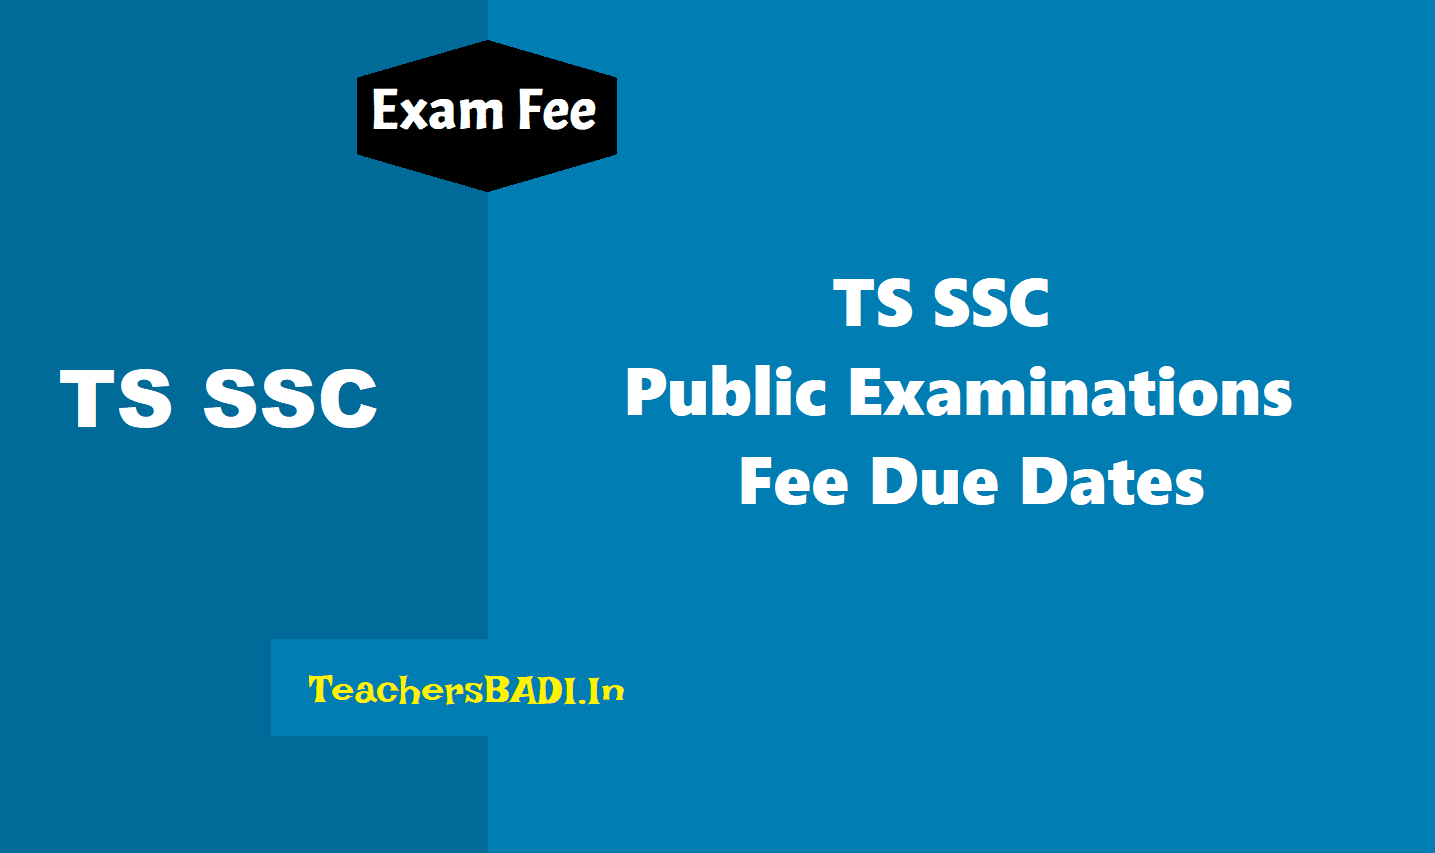 ts ssc 2020 exams fee dates,ssc march 2020 exams fee schedule,ts ssc exams 2020 fee dates,bse telangana ssc exams 2020 exams fee head of account,ddo code,ssc,ossc,vocational